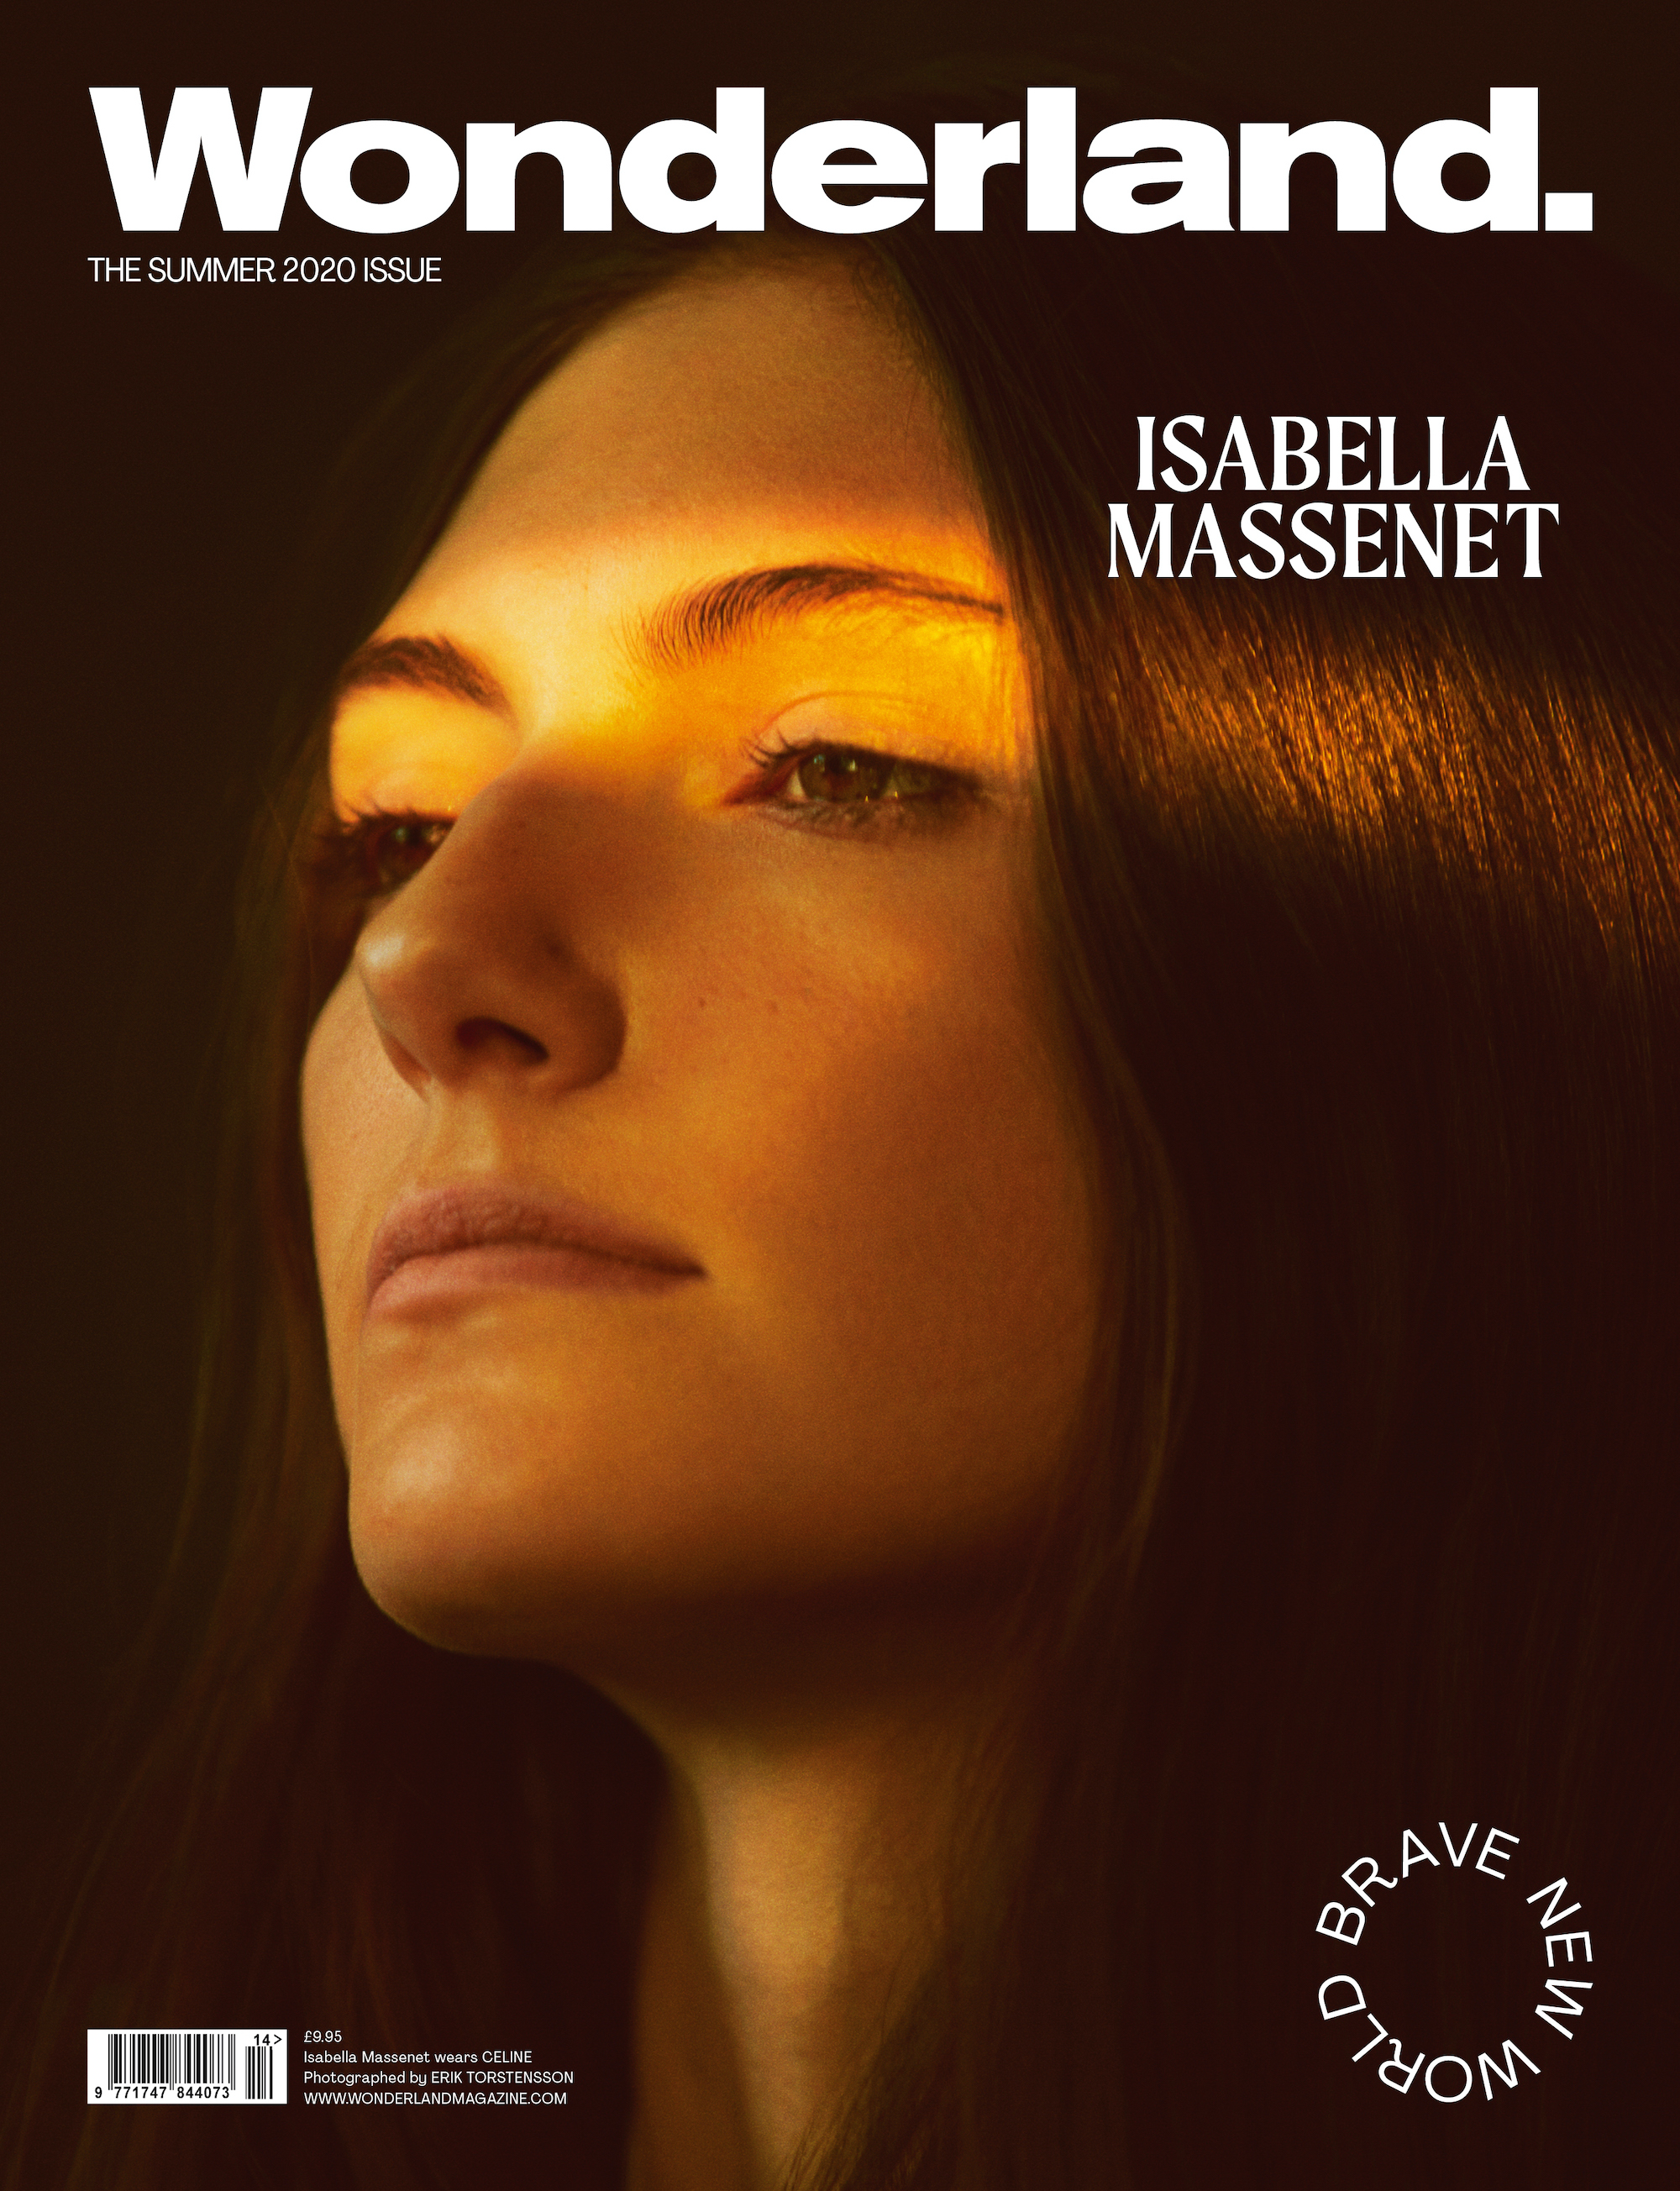 ISABELLA_MASSENET covers the Summer 2020 issue